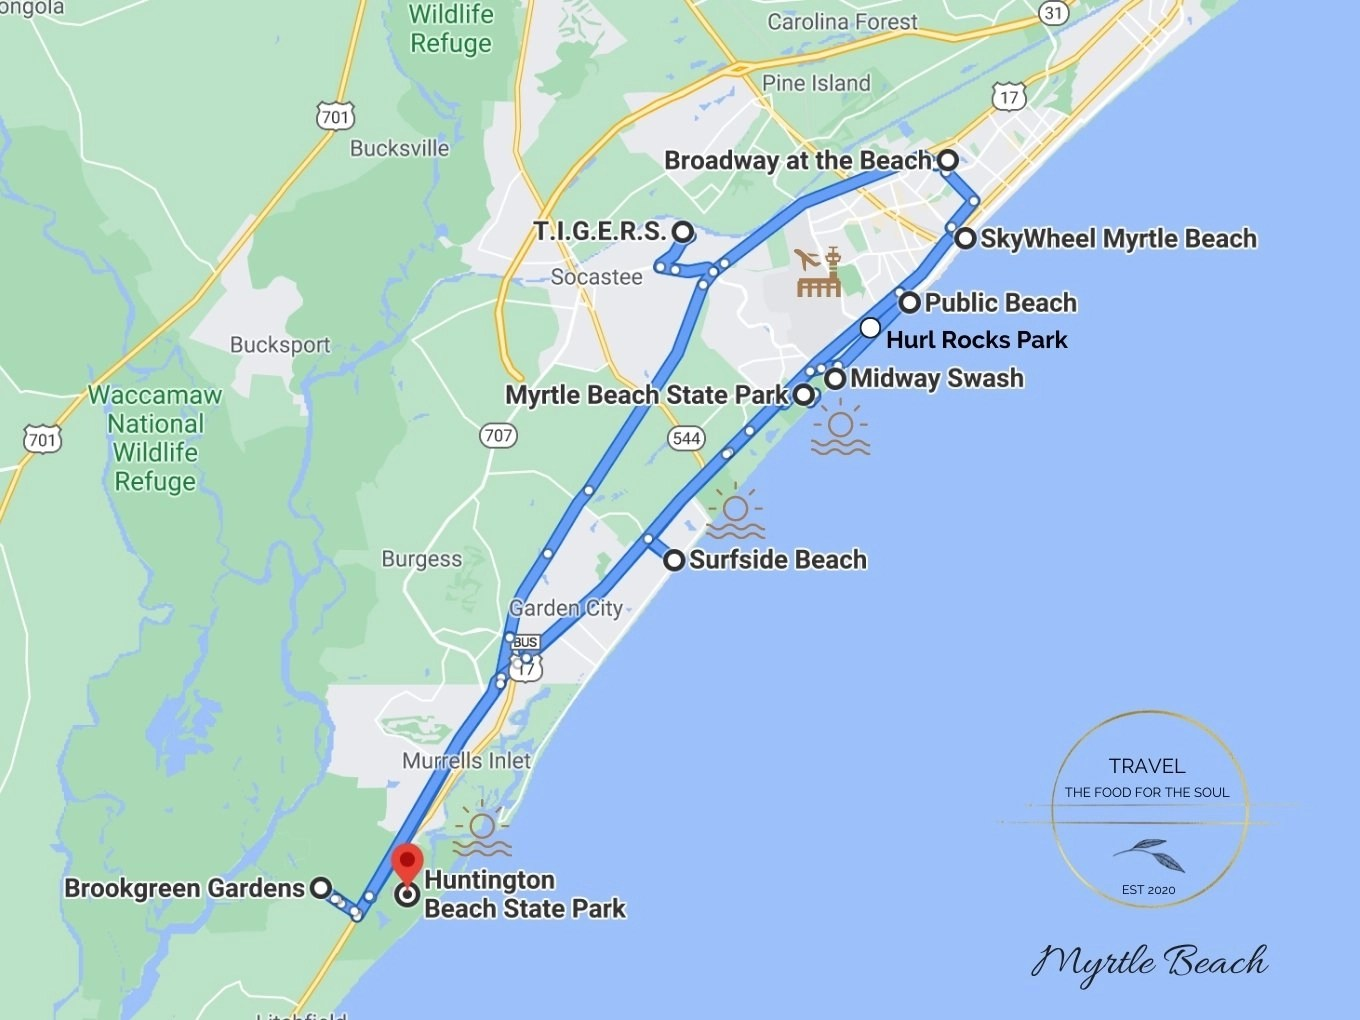 Myrtle Beach Attractions Map Myrtle Beach Travel Guide